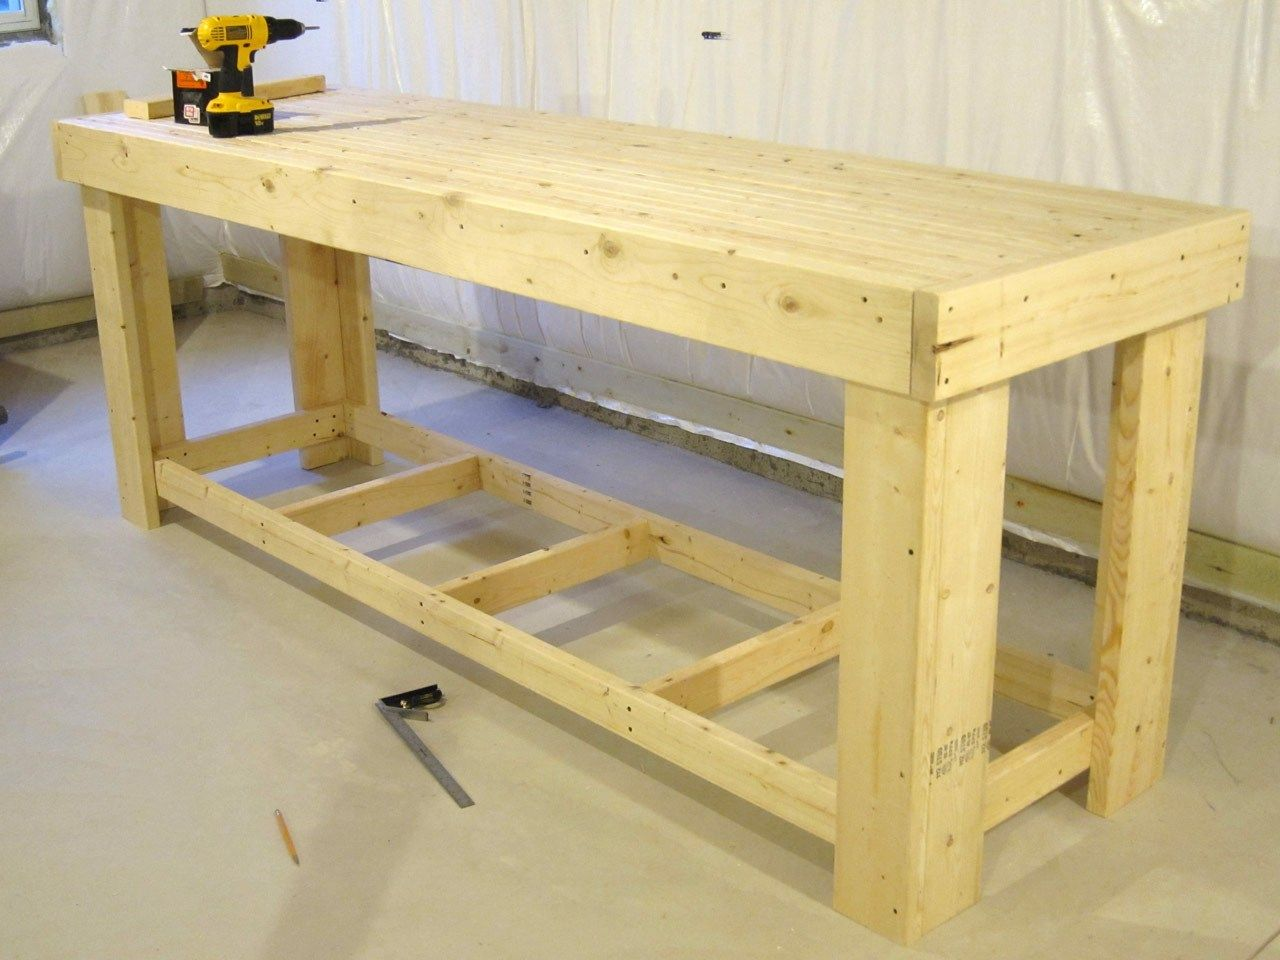 Pin by Tim Senft on House Ideas Woodworking bench plans